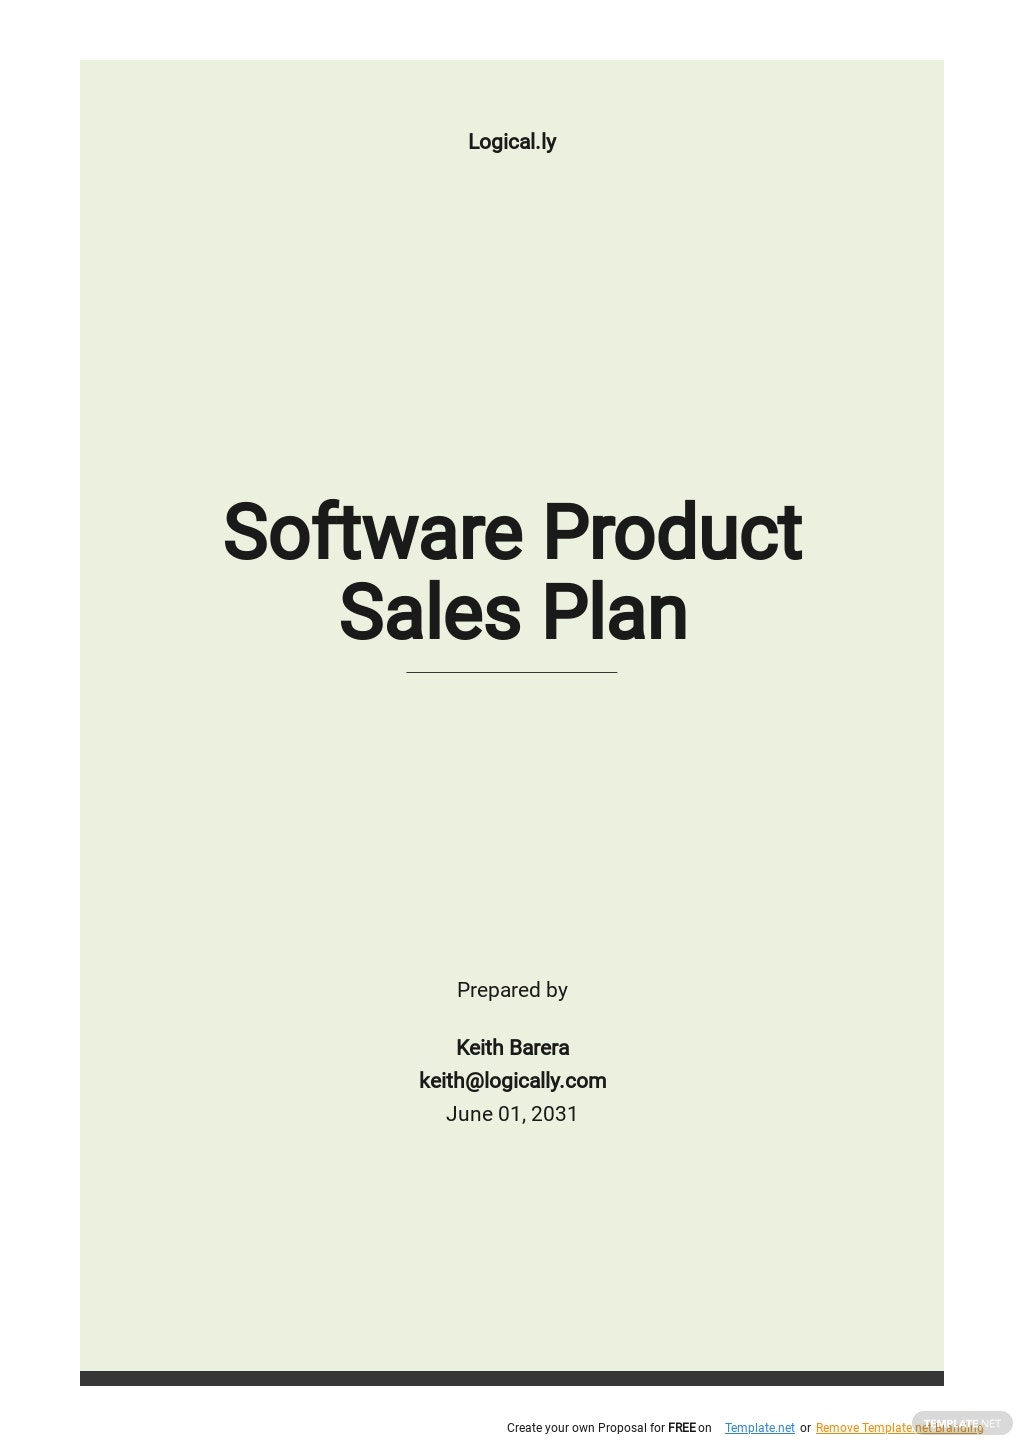 Software Product Sales Plan Template.jpe